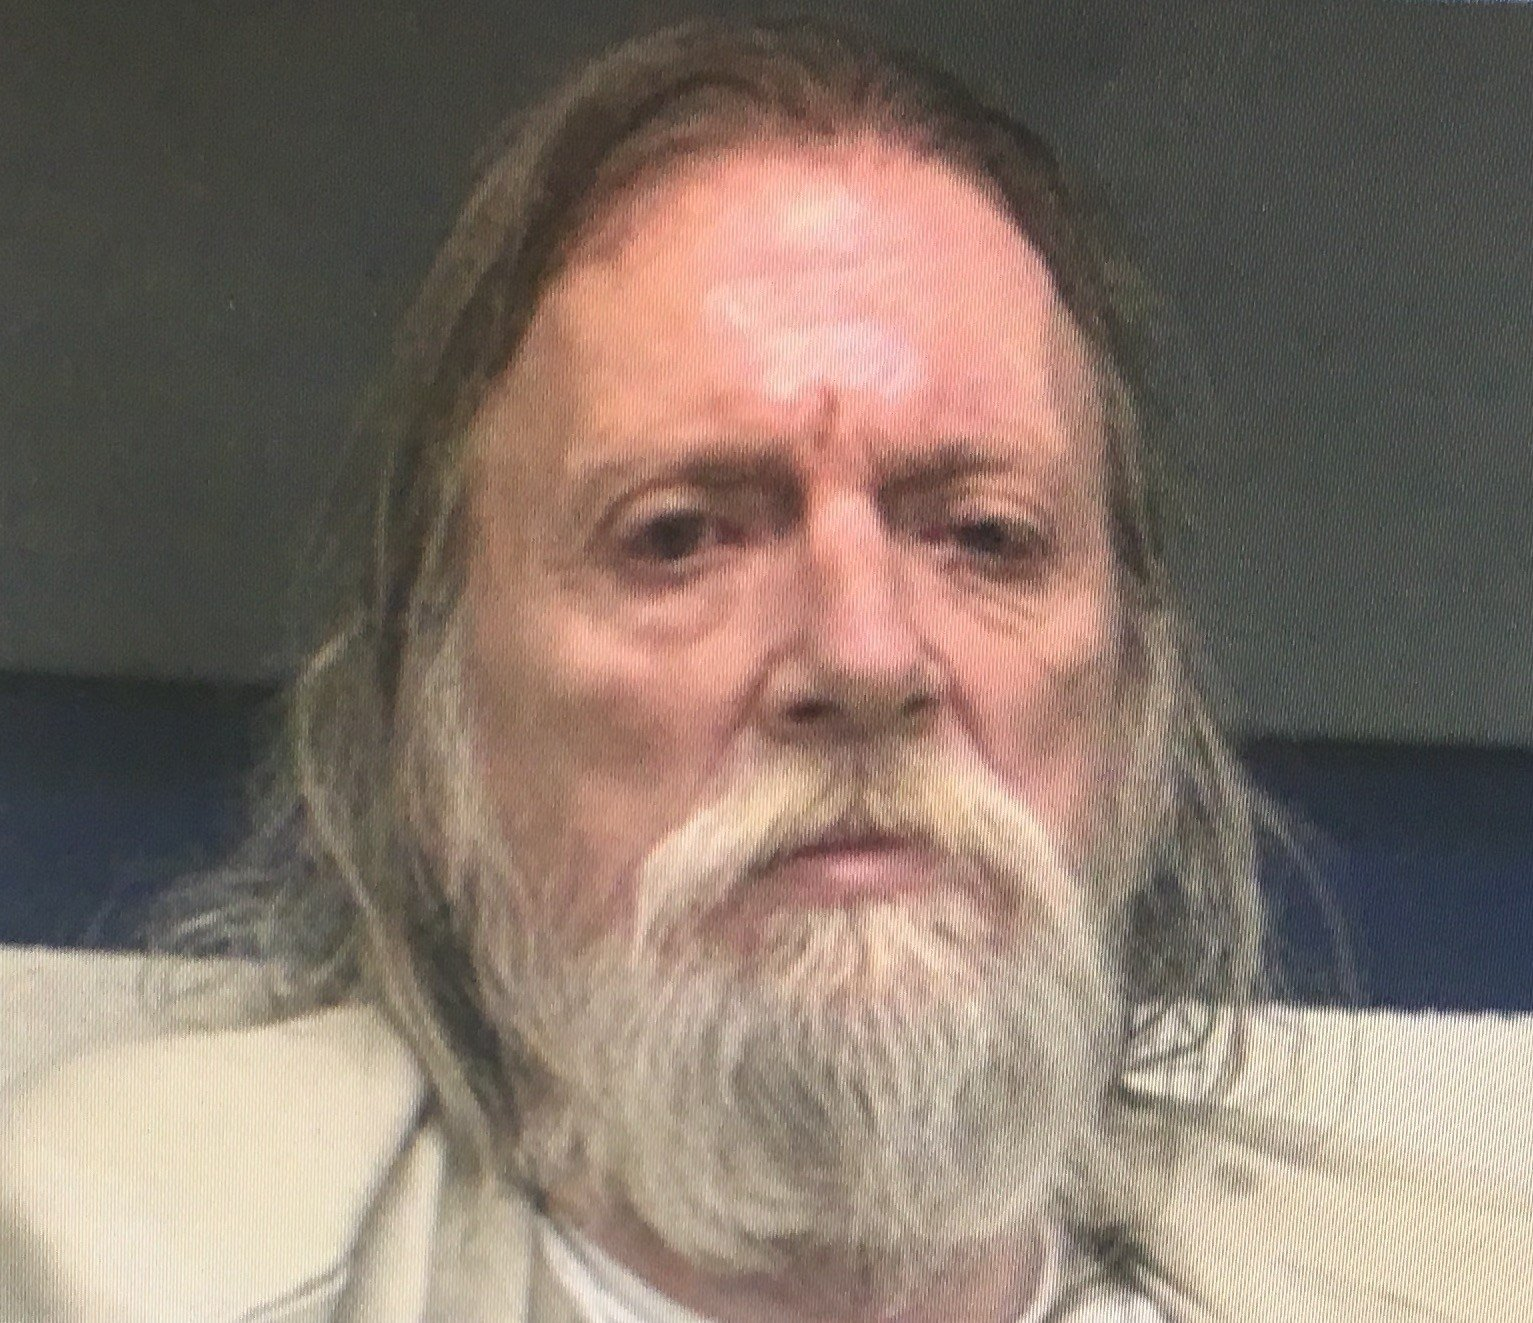 Robert Hall was last seen in Waterbury but has not been heard from in several days.  (Naugatuck Police Department)